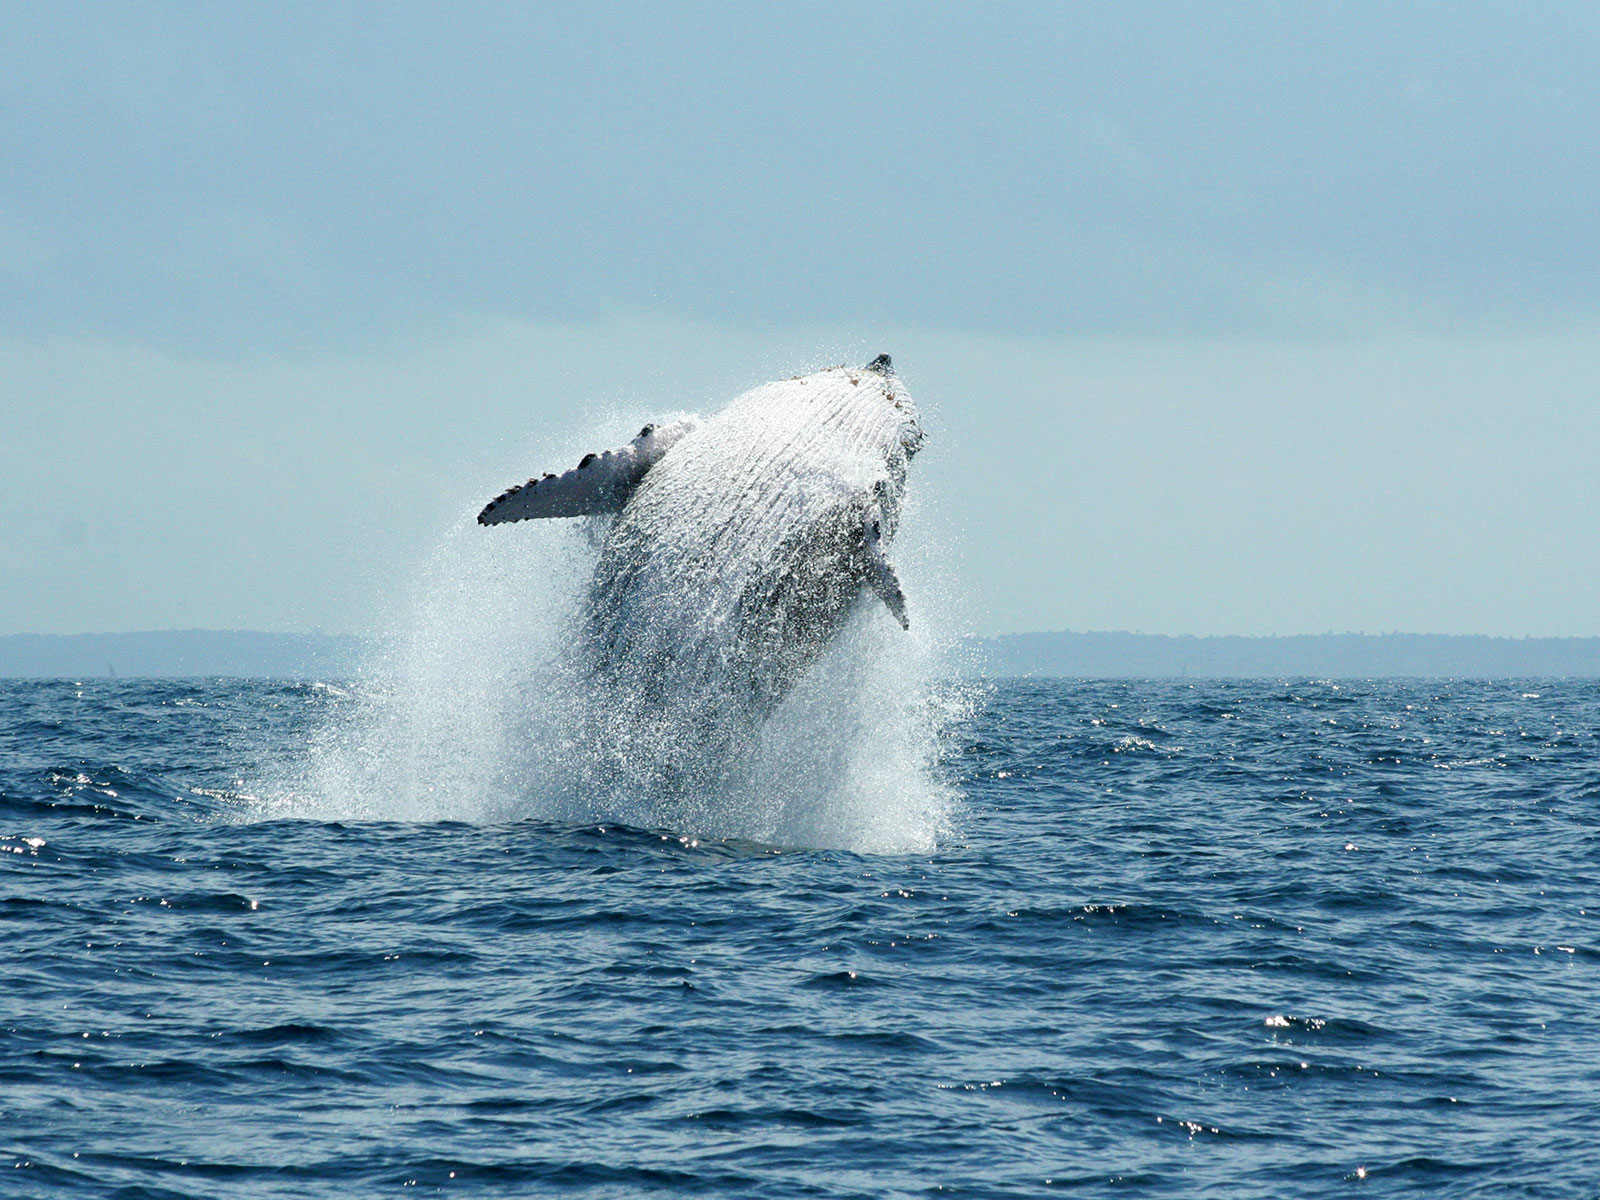 Gallery Tours & Safaris - whale-watching-tours